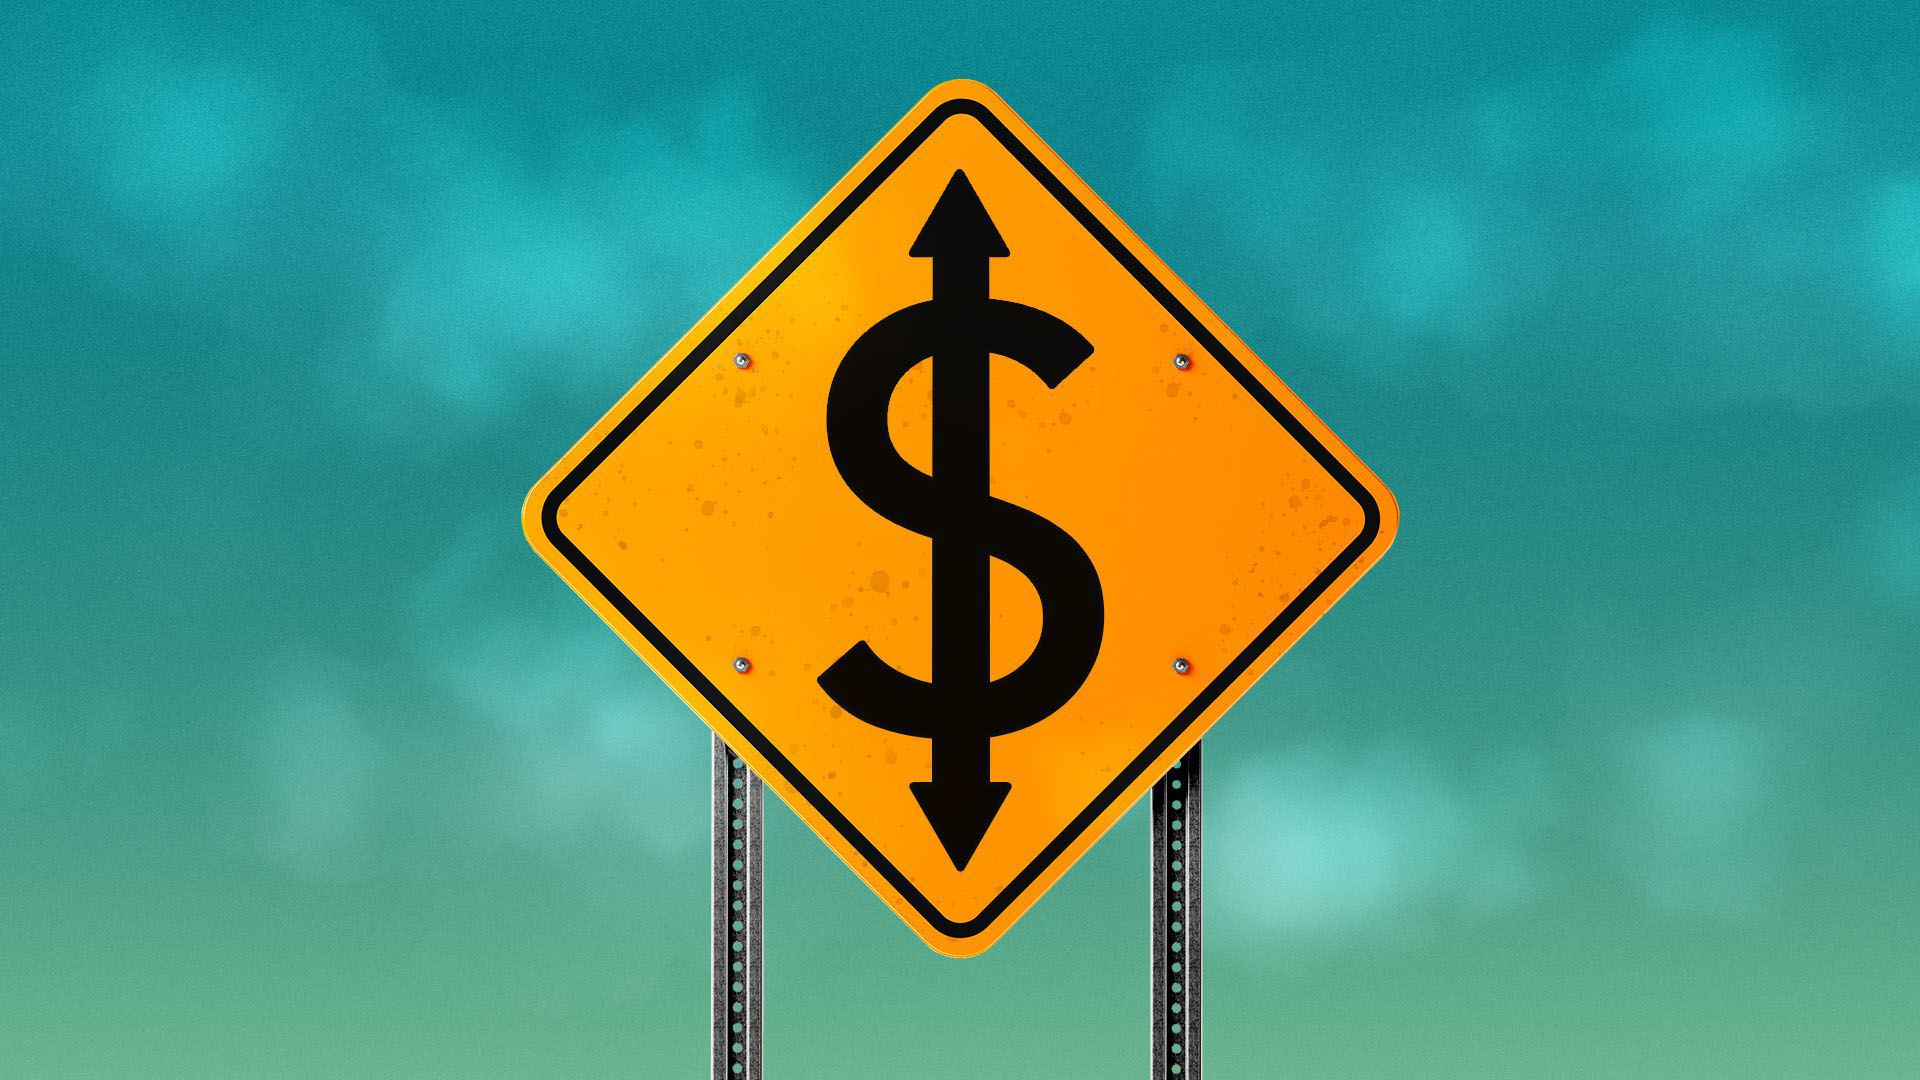 Illustration of a street sign with a dollar symbol with two arrows on it